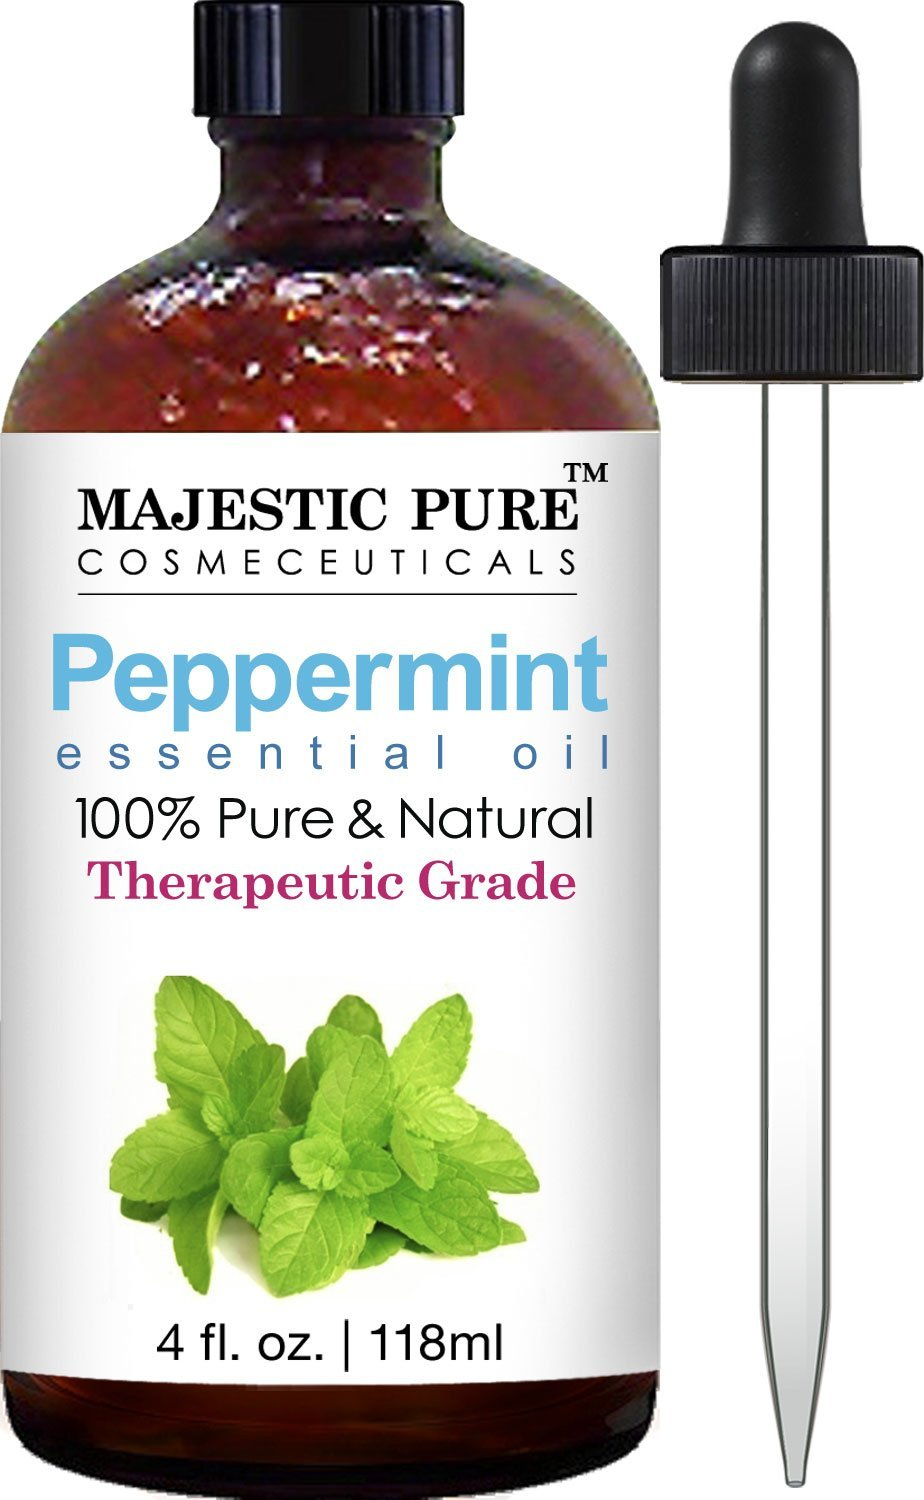 Majestic Pure Peppermint Oil